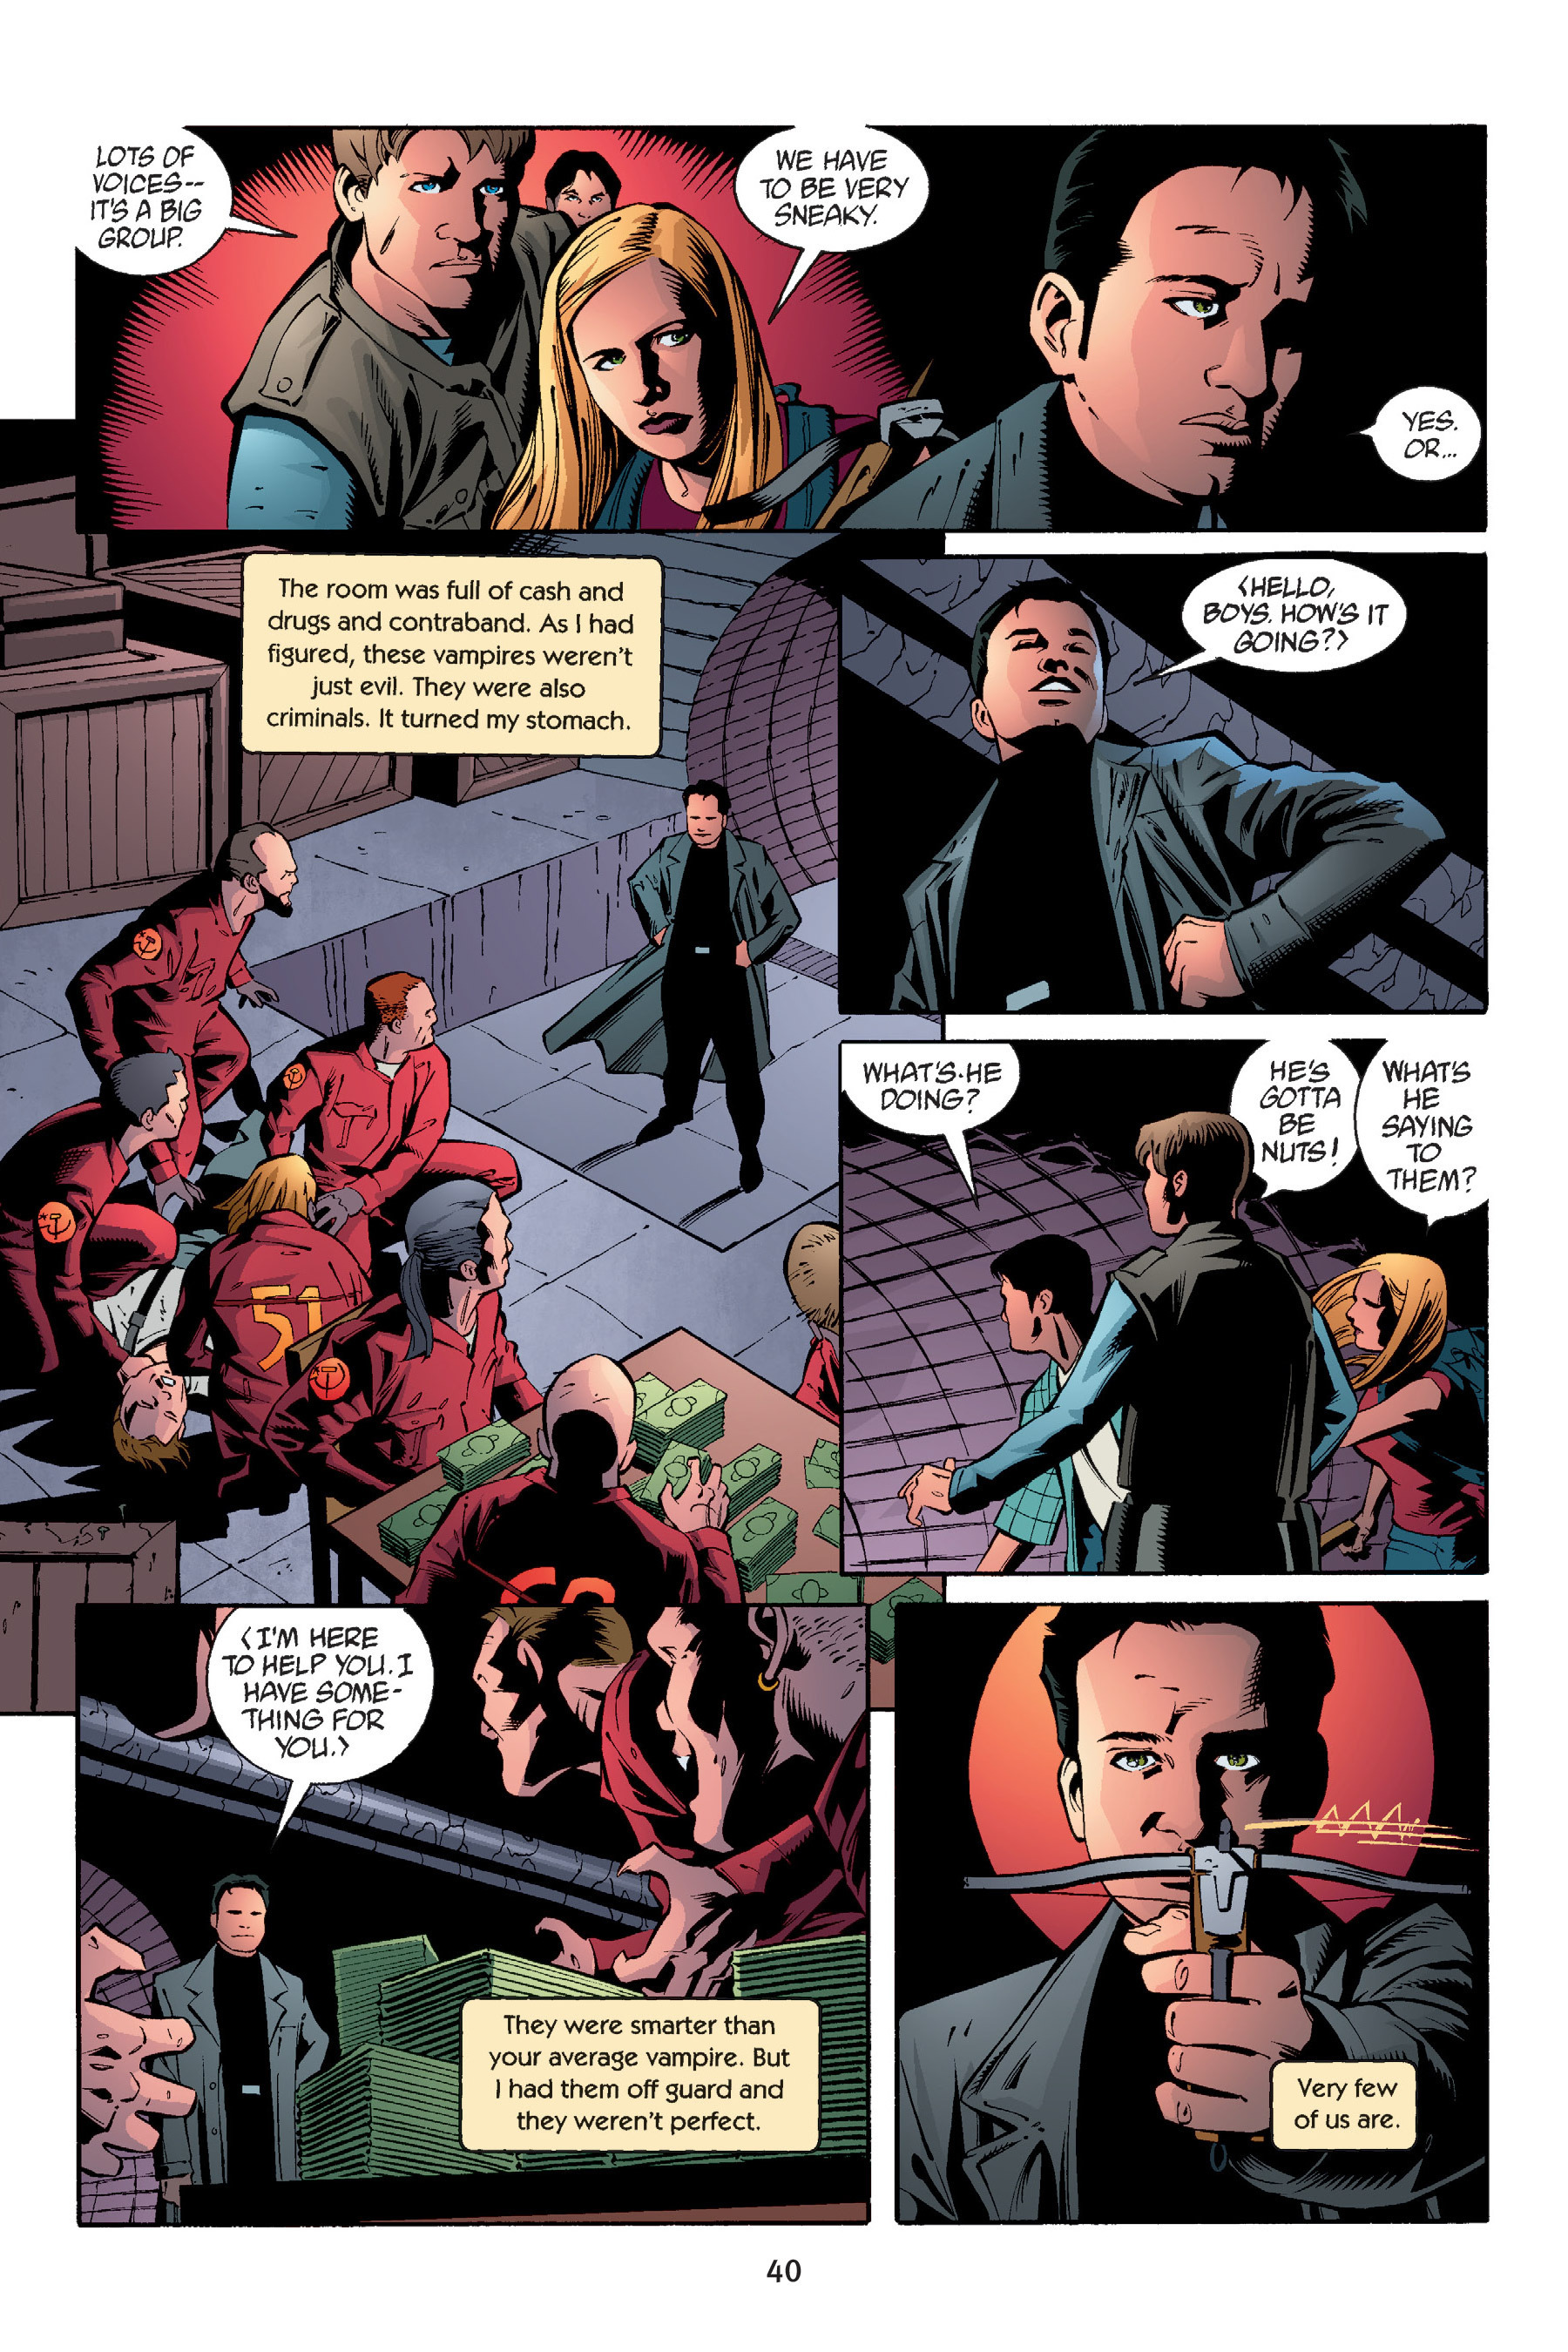 Read online Buffy the Vampire Slayer: Omnibus comic -  Issue # TPB 6 - 41